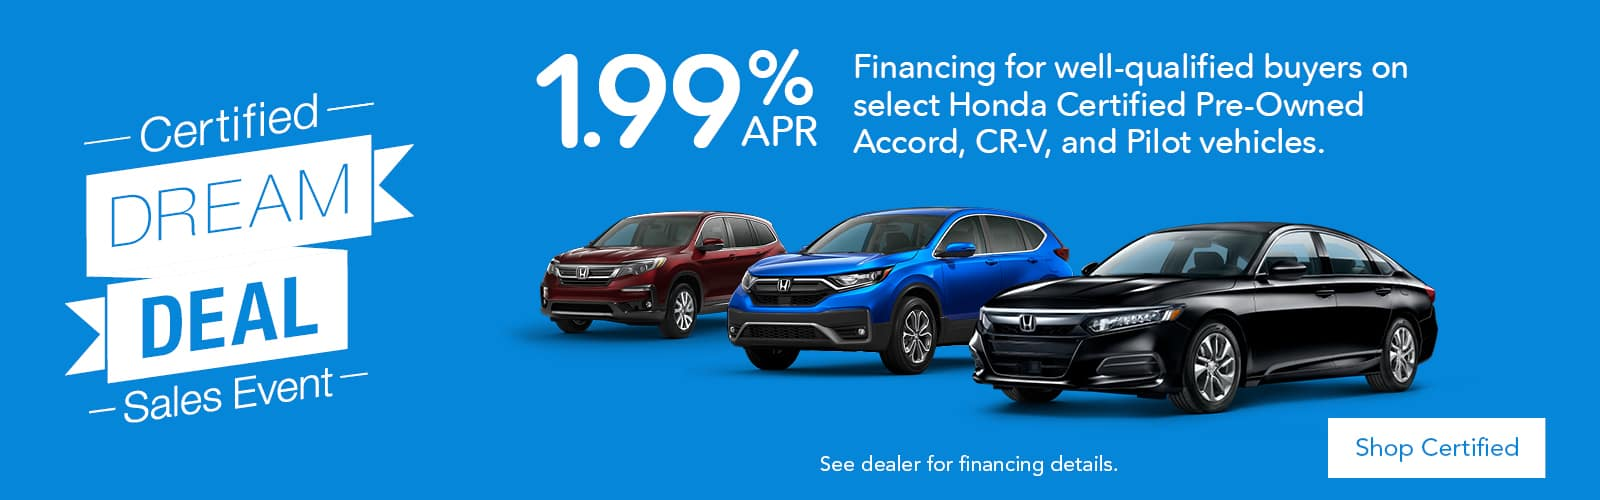 Honda Certified Offers at Brickell